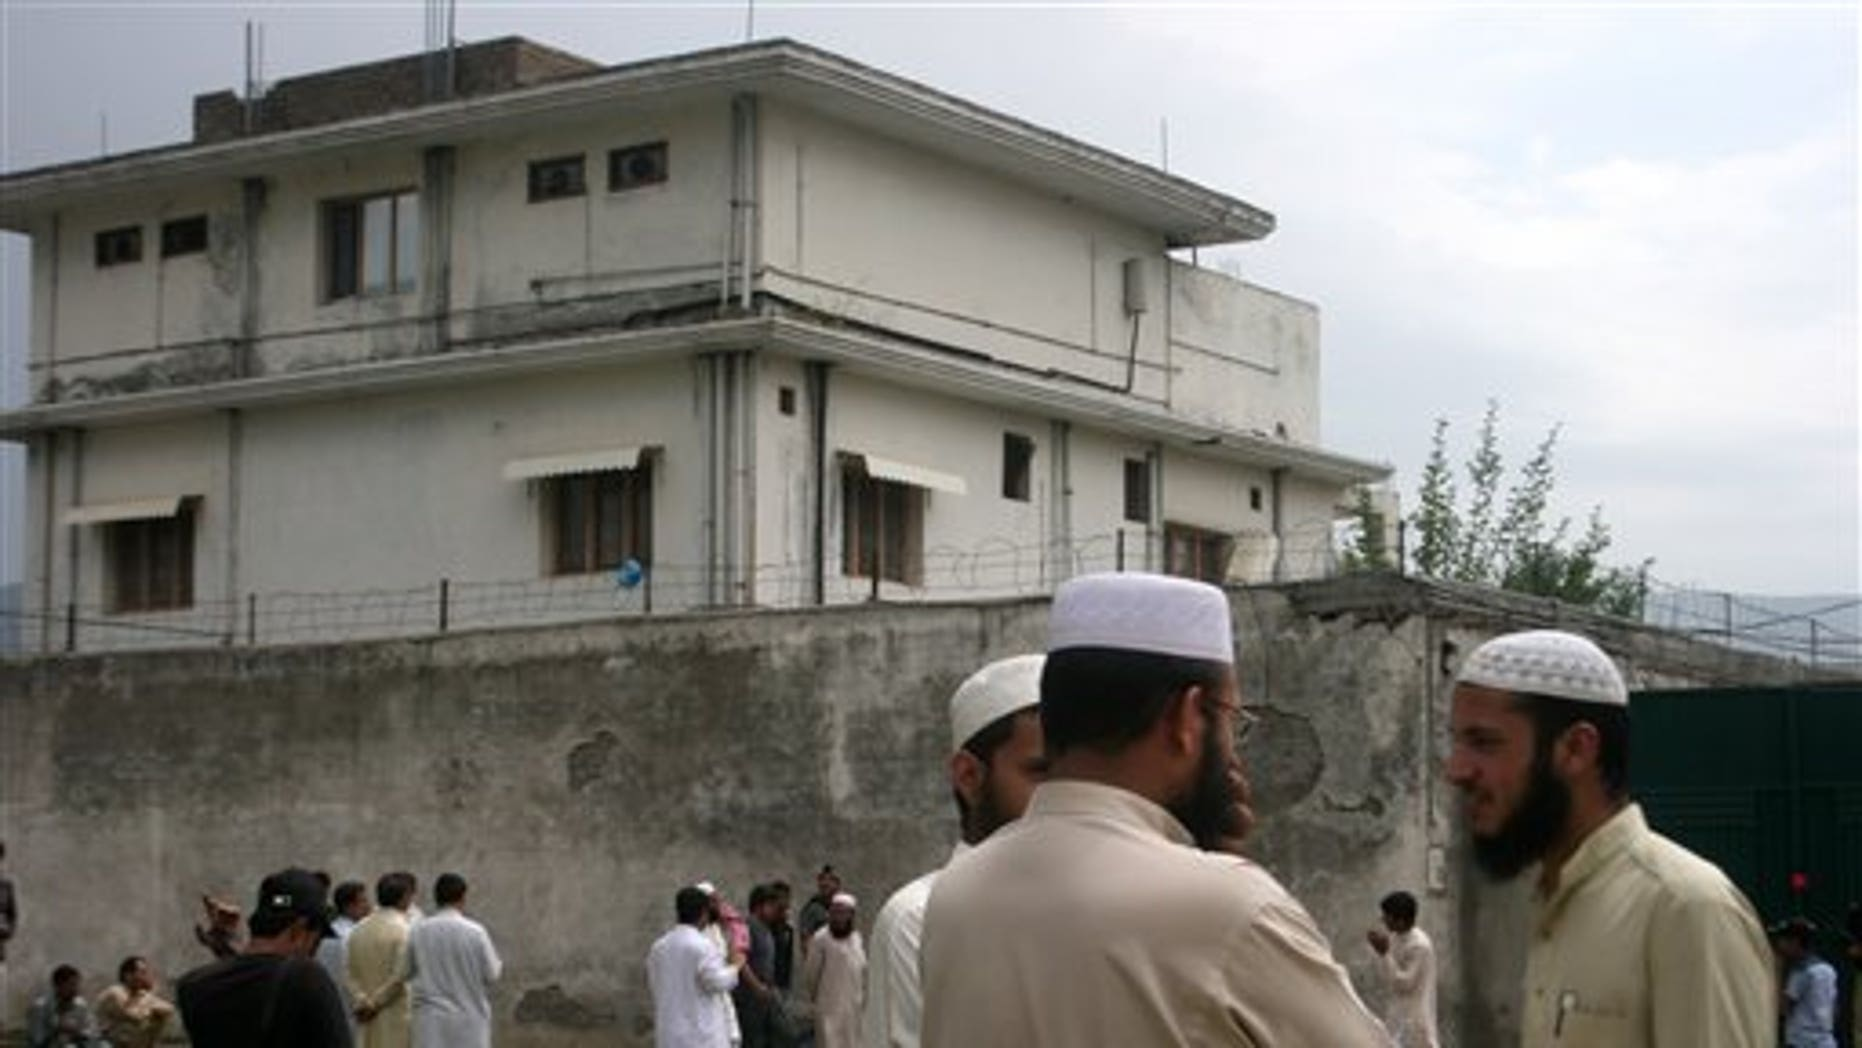 In this May 5, 2011 file photo, local residents and media are seen outside the house where Al Qaeda leader Usama bin Laden was caught and killed in Abbottabad, Pakistan. The courier who led U.S. intelligence to bin Laden's hideout in Pakistan hailed from the Swat Valley, a one-time stronghold of militant Taliban fighters, Pakistani officials said. (AP/File)